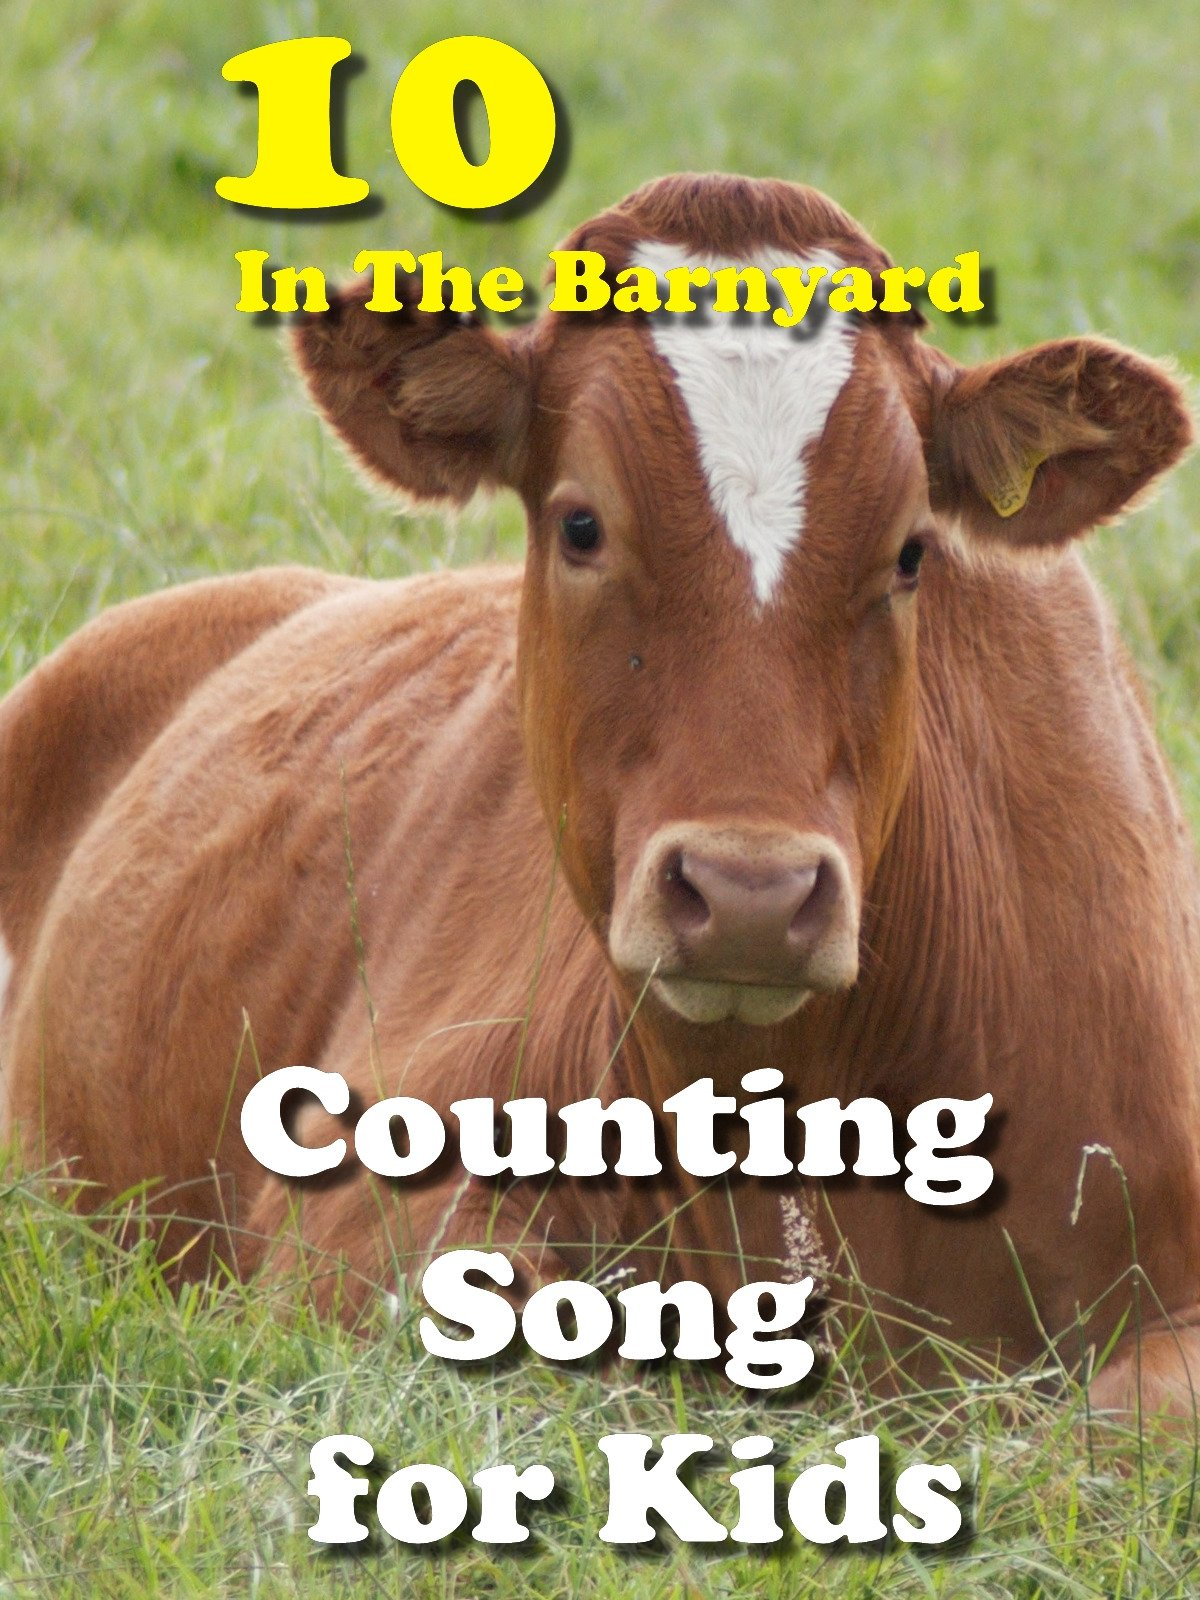 10 In The Barnyard Counting Song For Kids